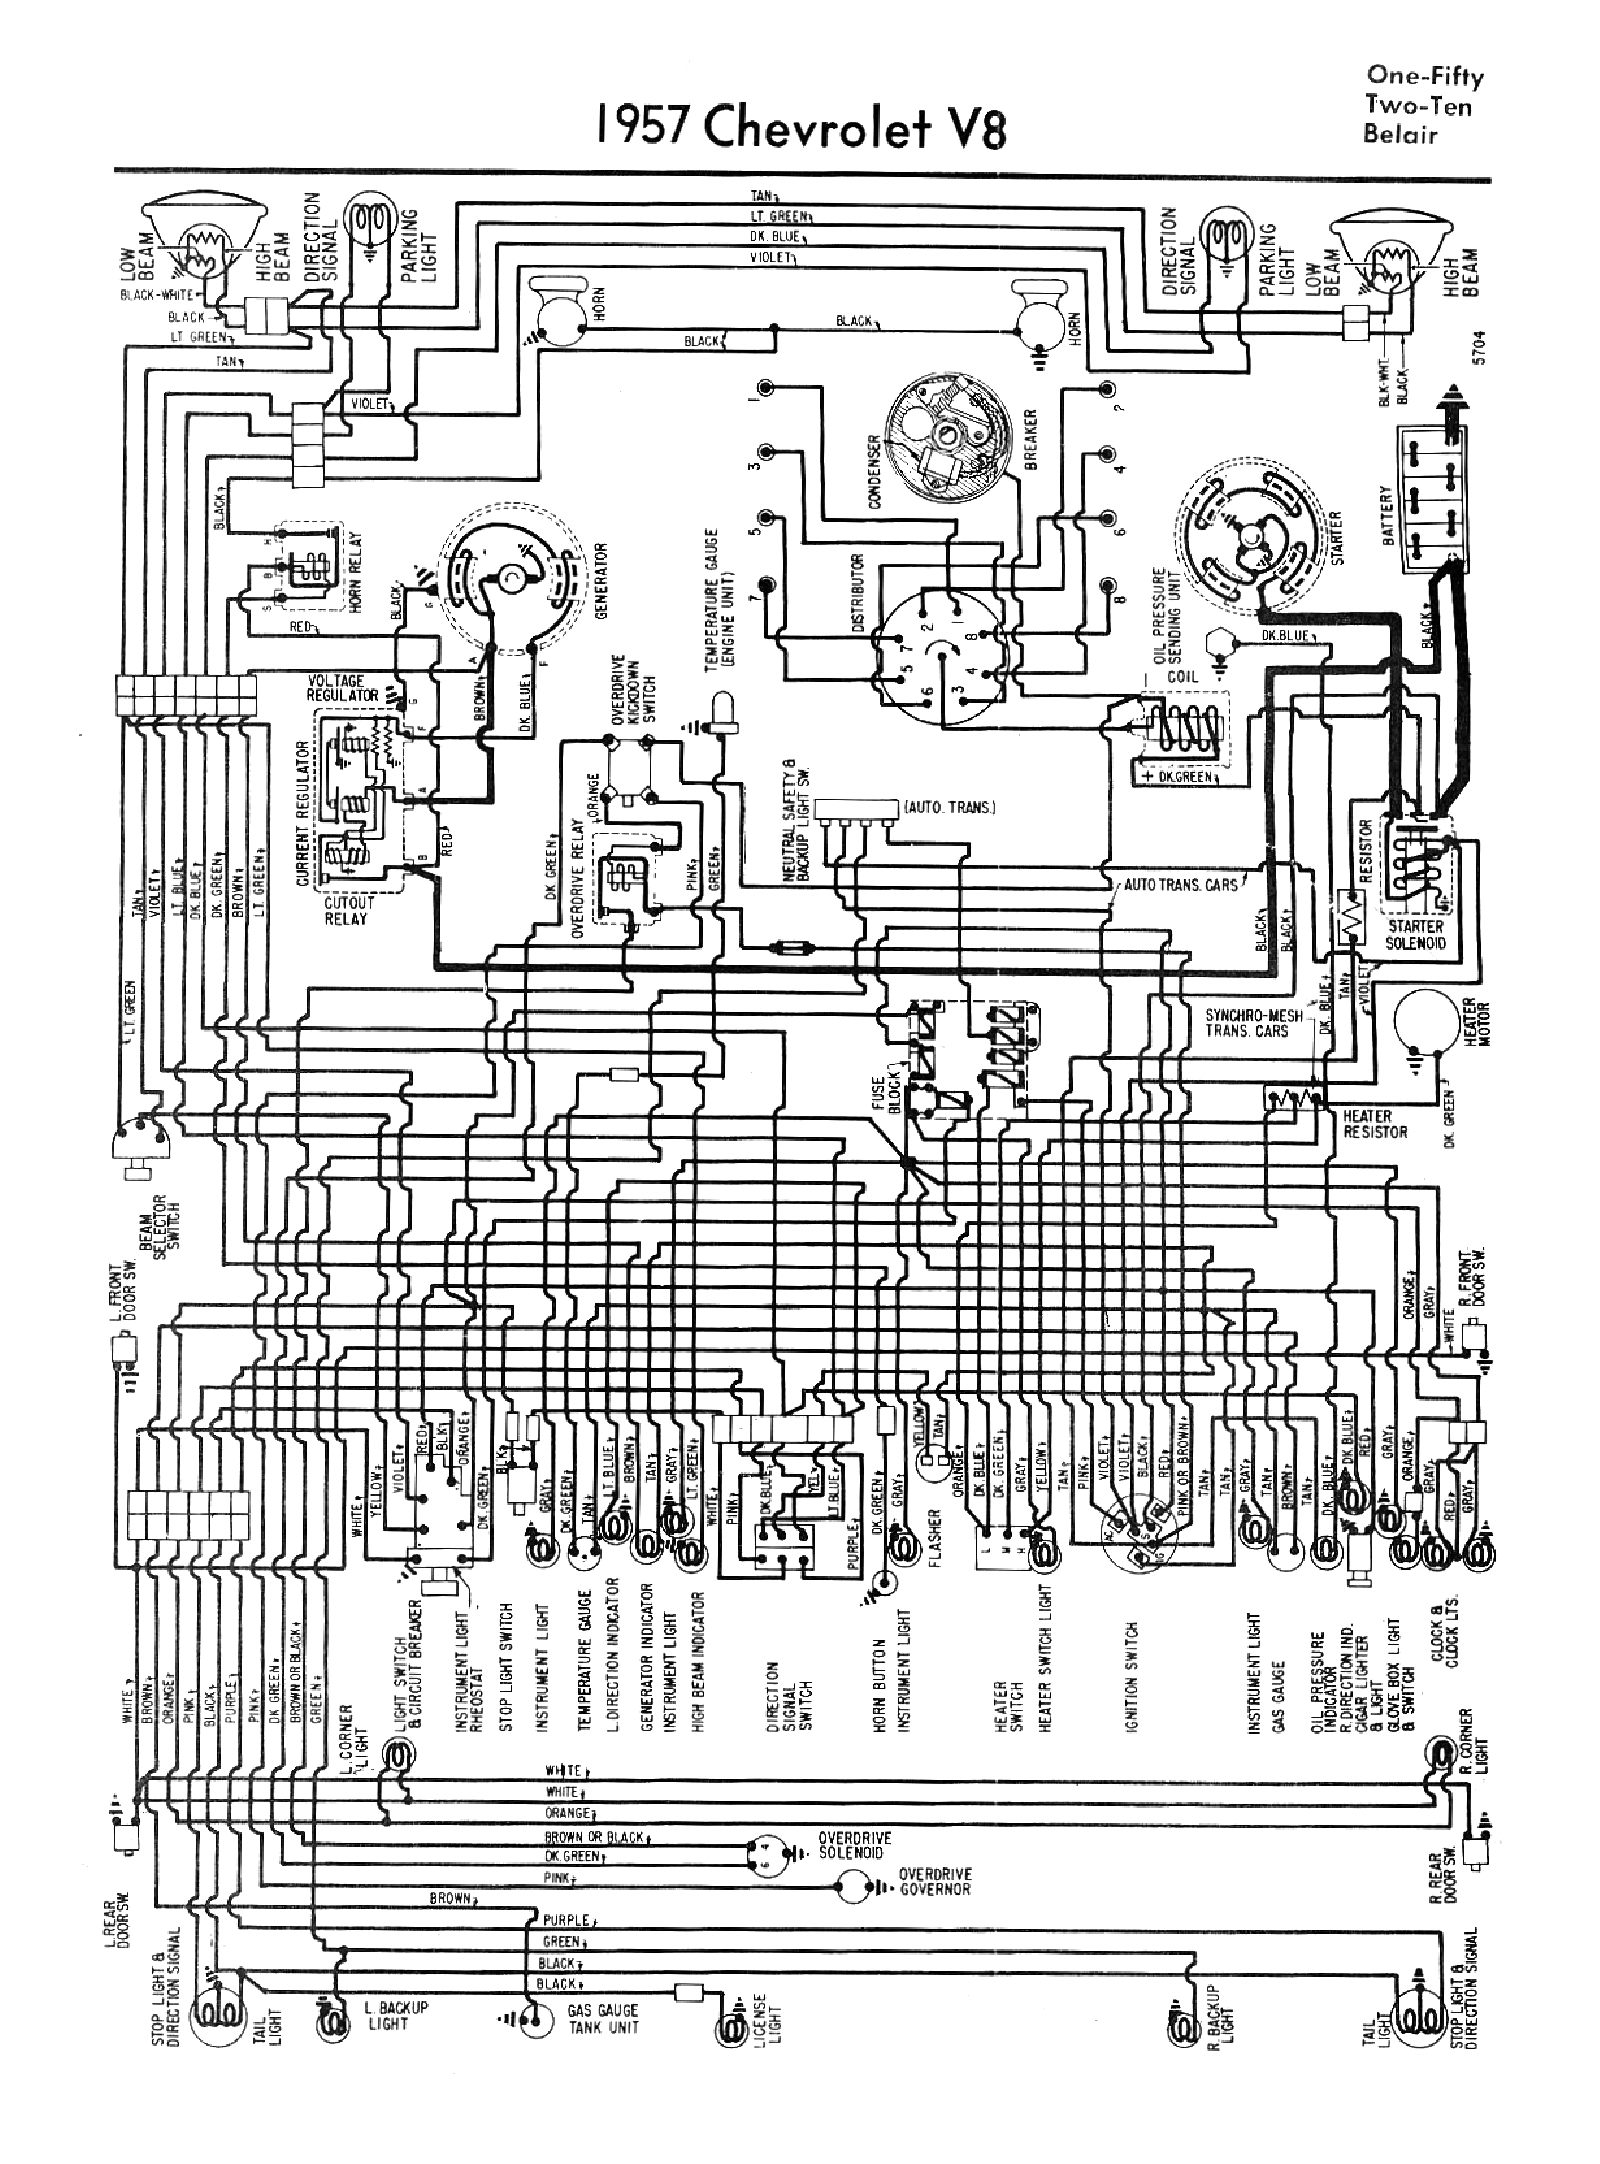 1957 Pontiac Wiring Diagram Diagrams Box Chevy 1964 Chevelle